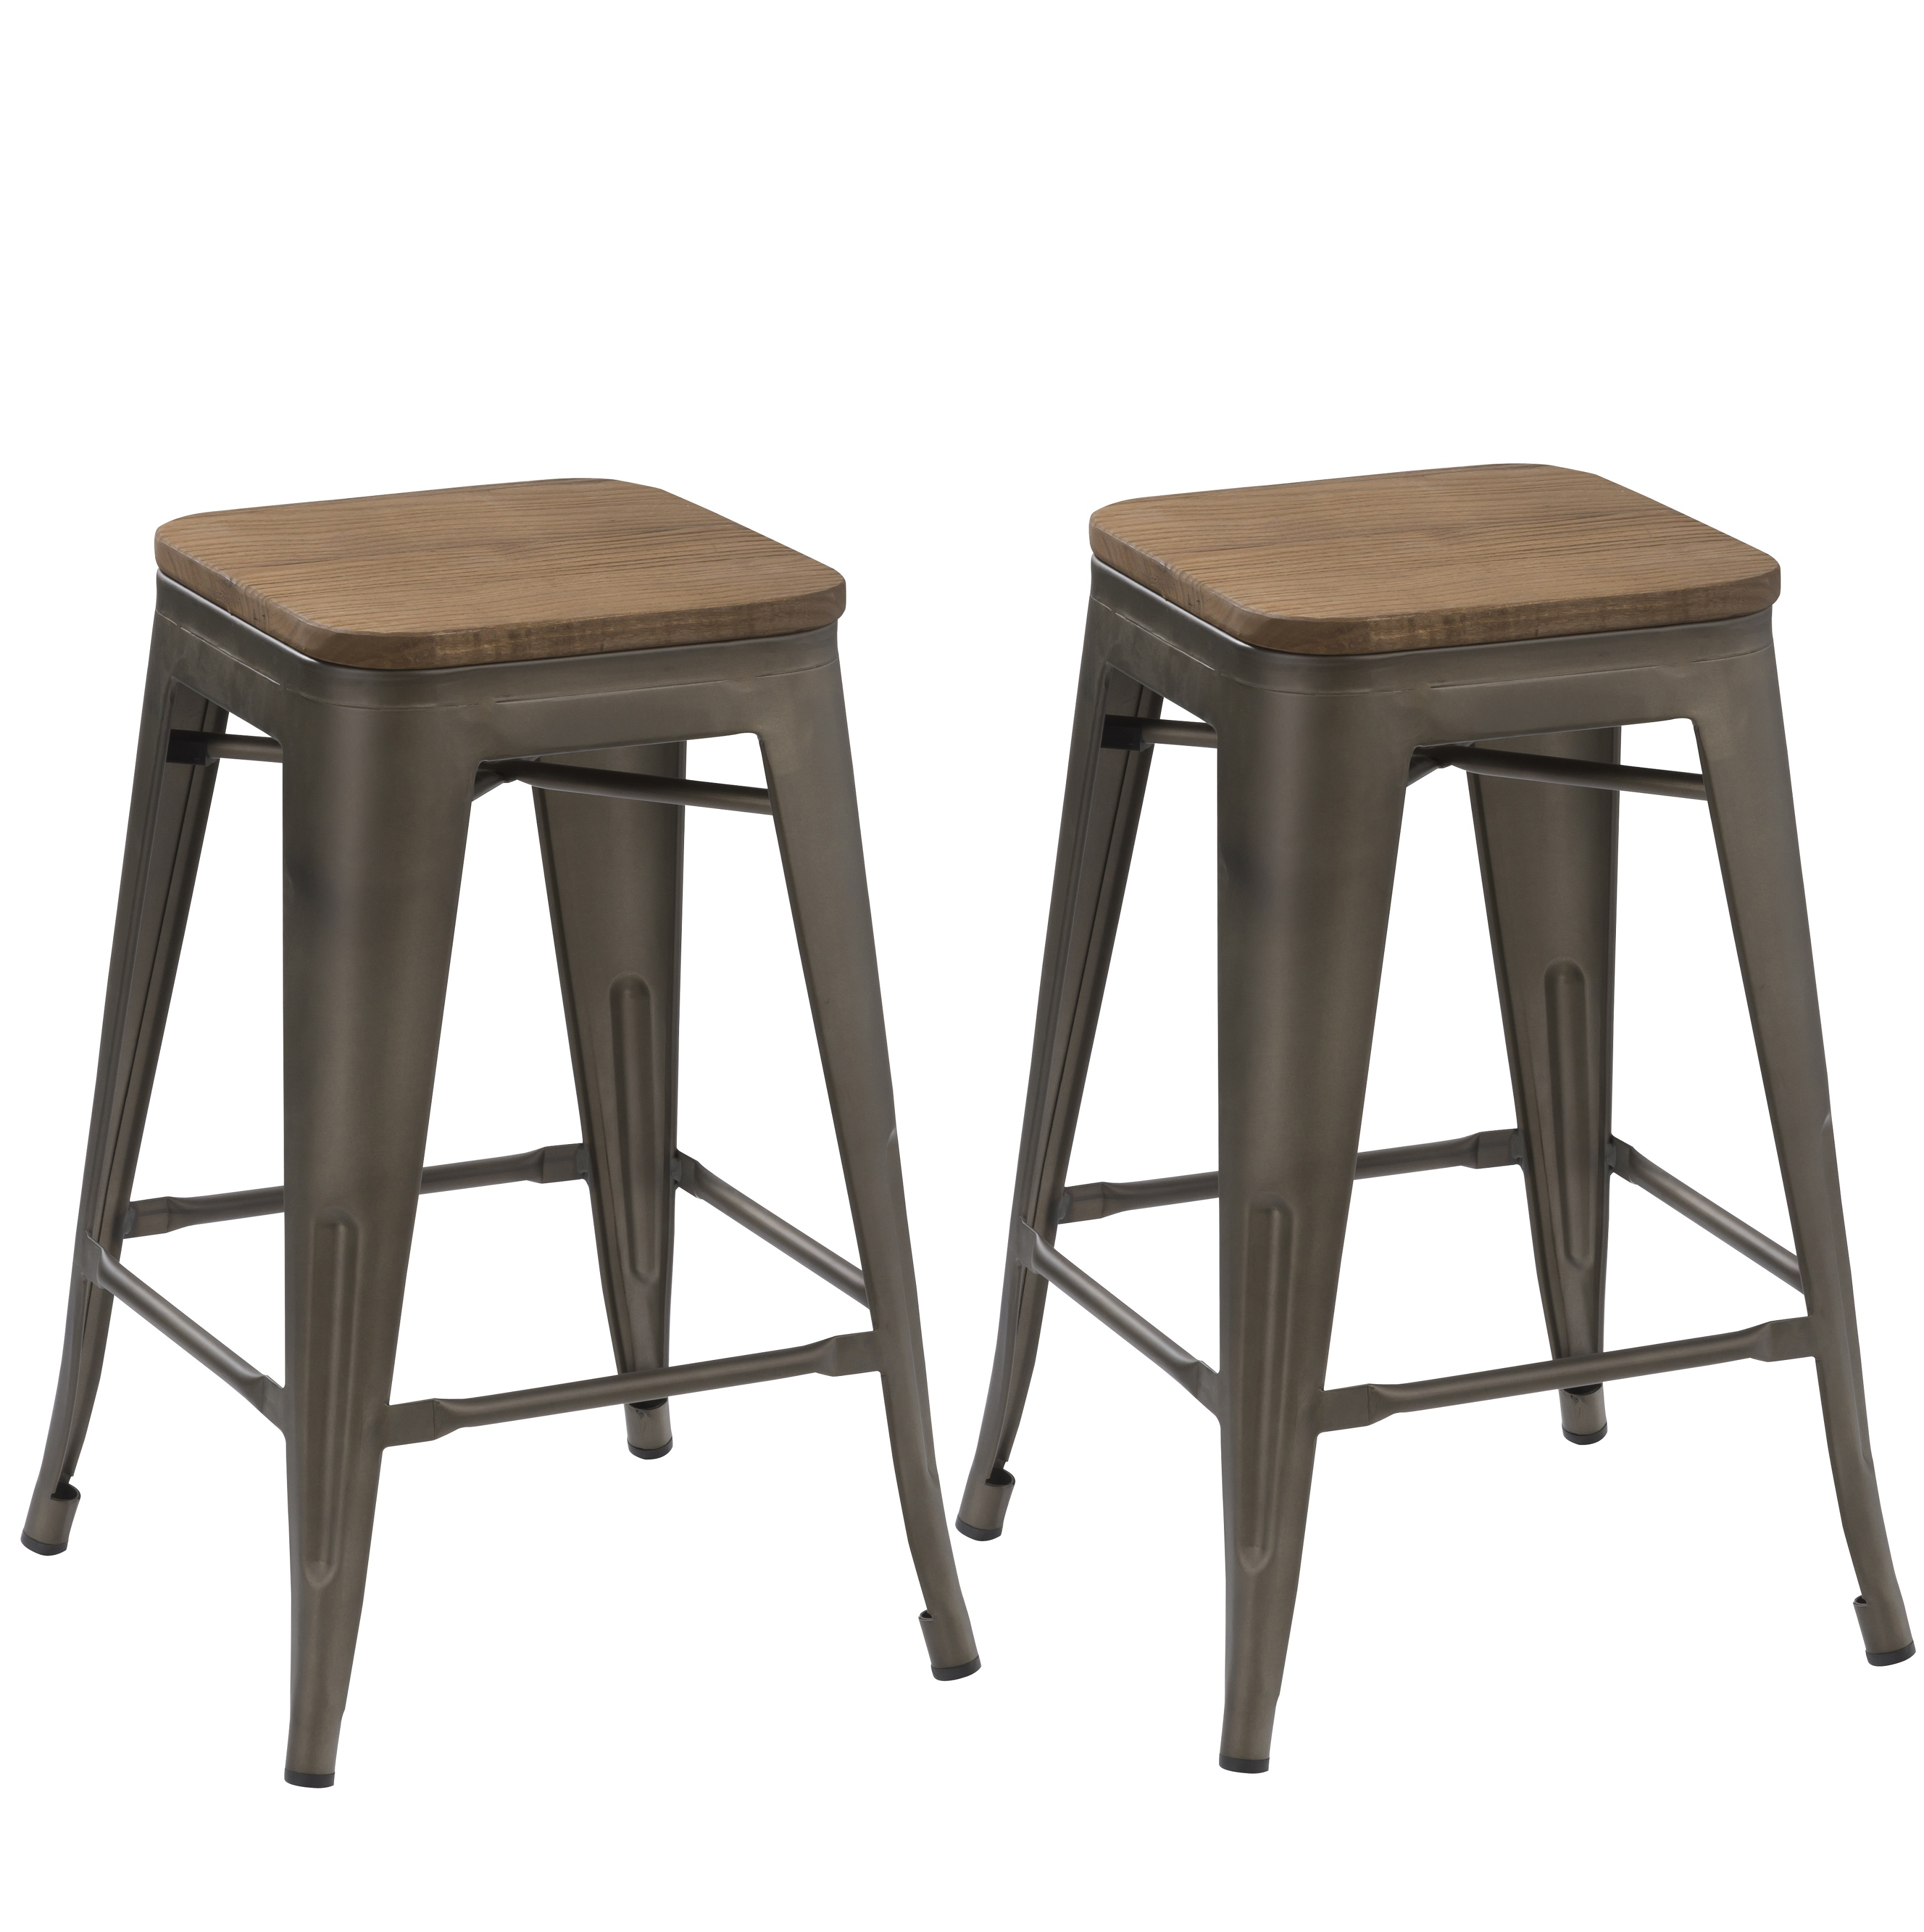 Perfect BTEXPERT® Modern 30 Inch Solid Steel Stacking Industrial Rustic Metal Bar  Stool With Wood Top